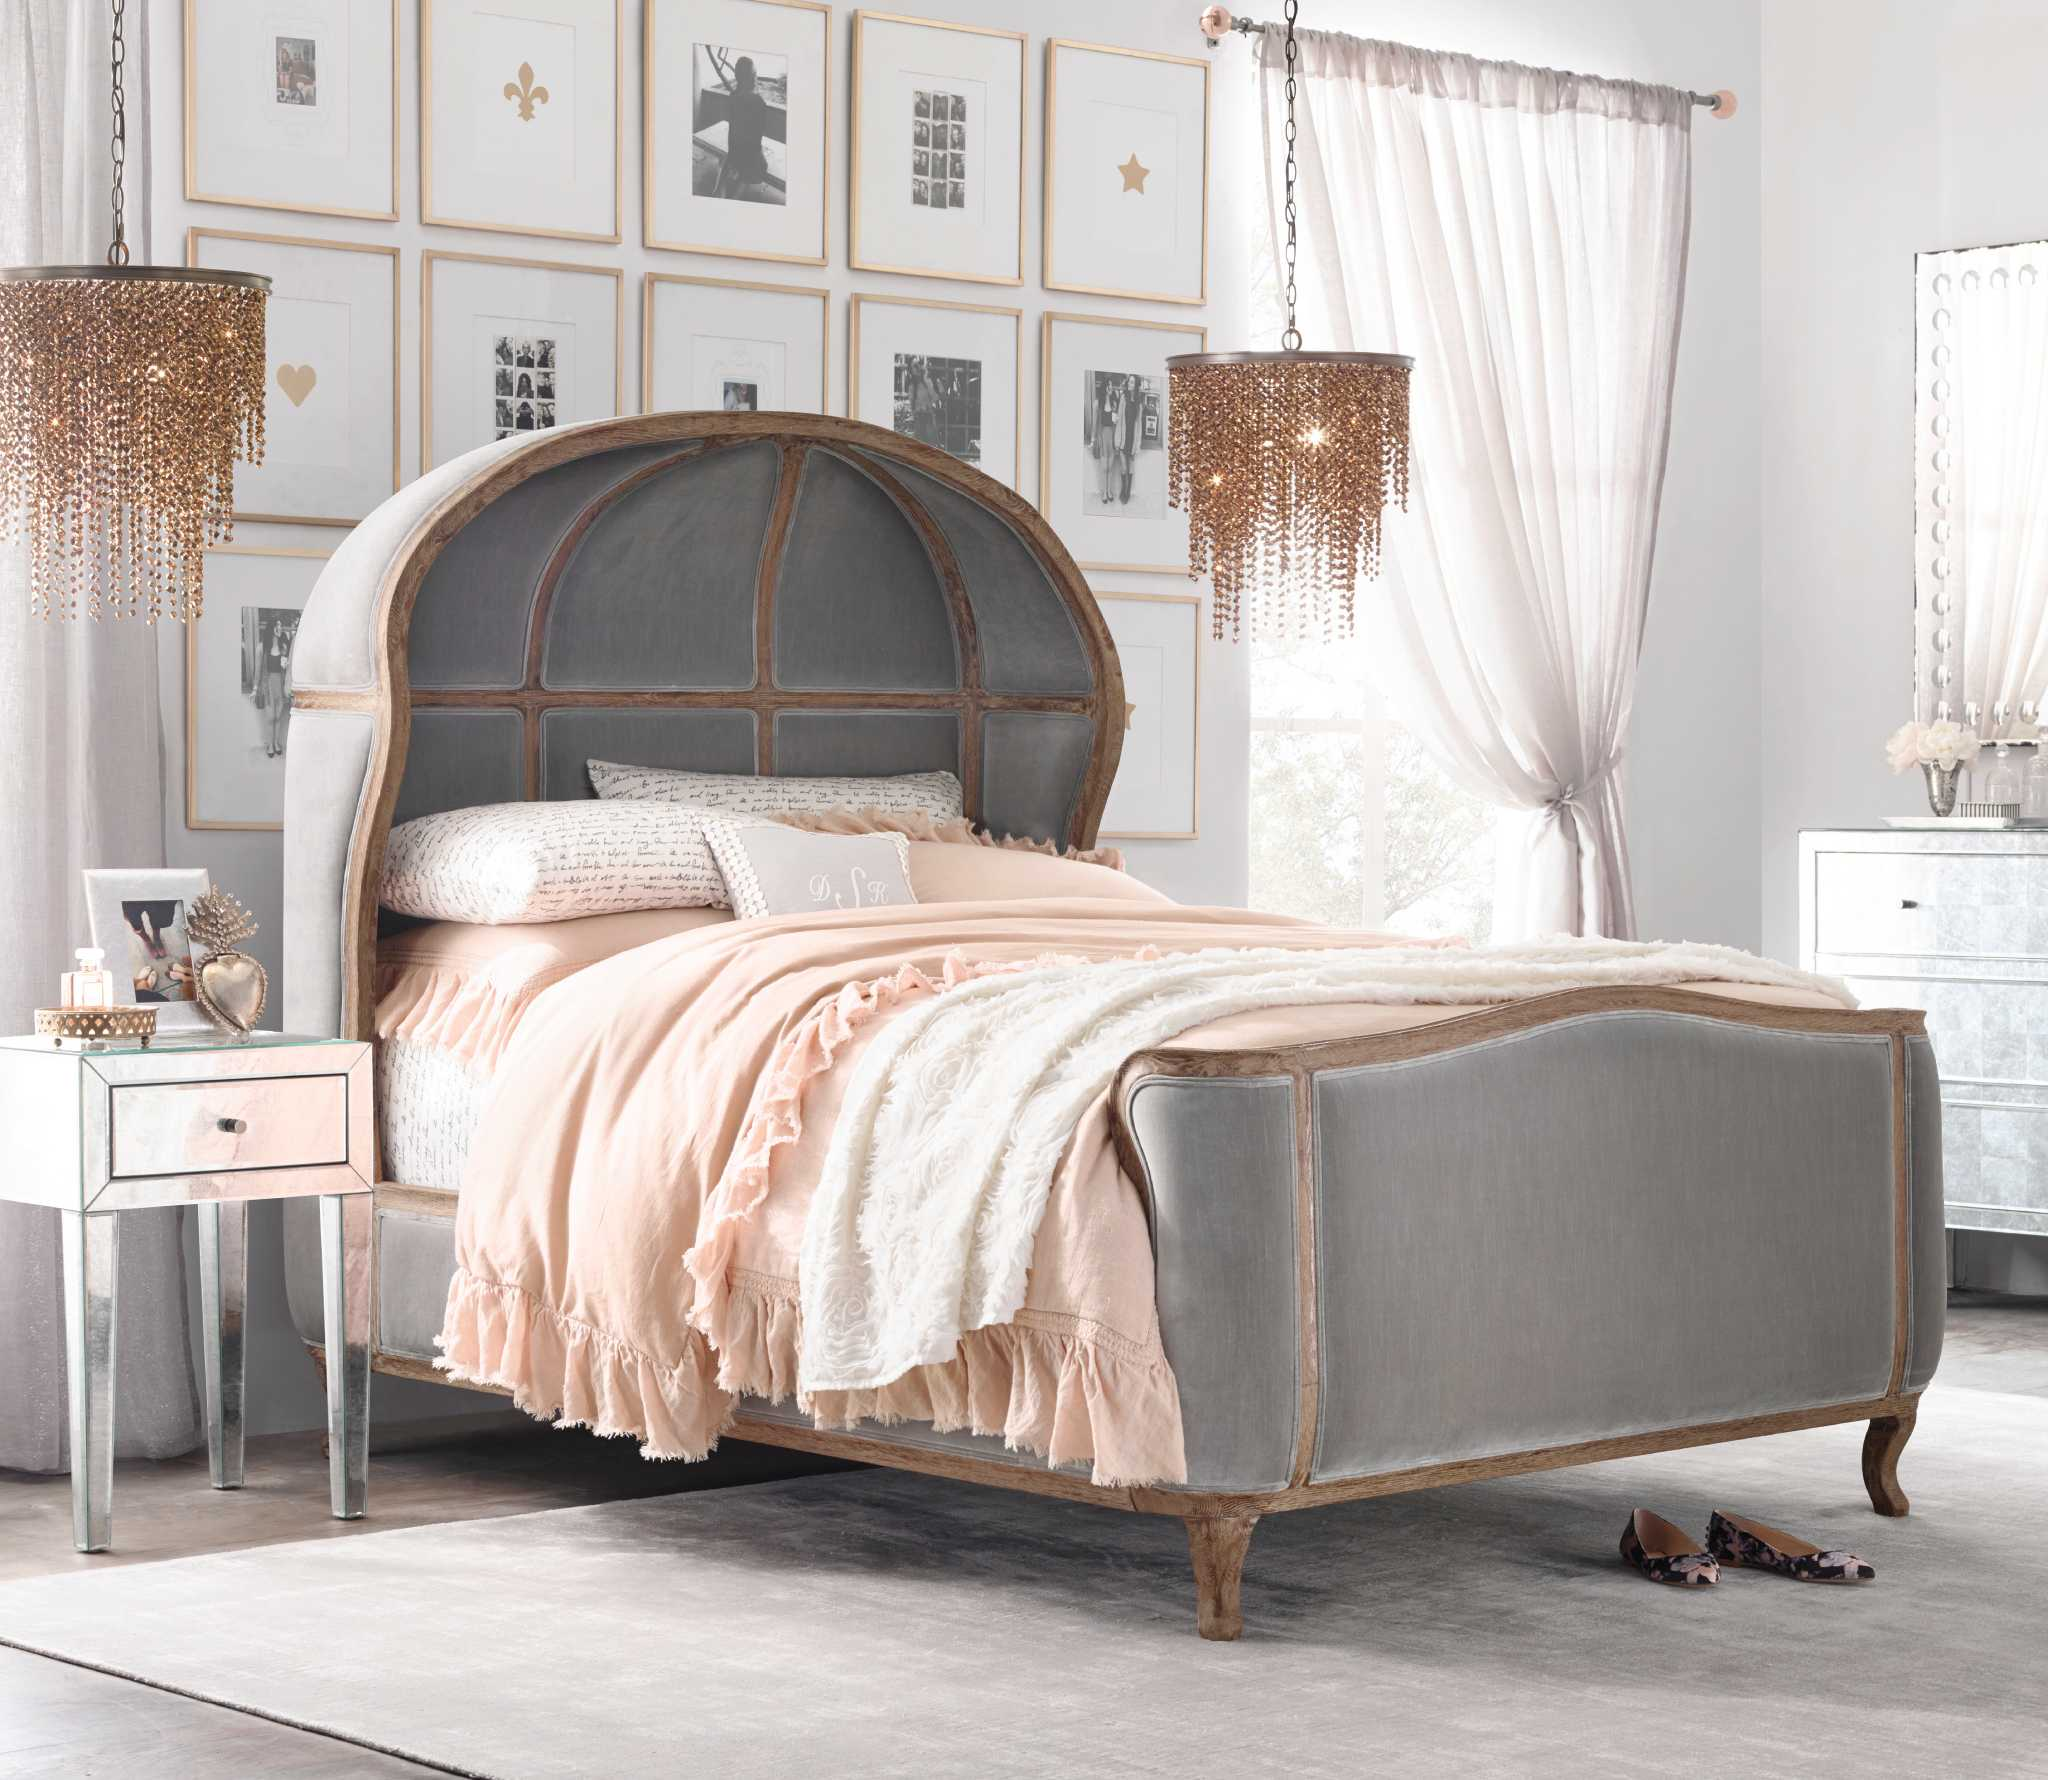 Restoration hardware bedroom furniture - Restoration Hardware Unveils New Collection For Teens Houston Chronicle